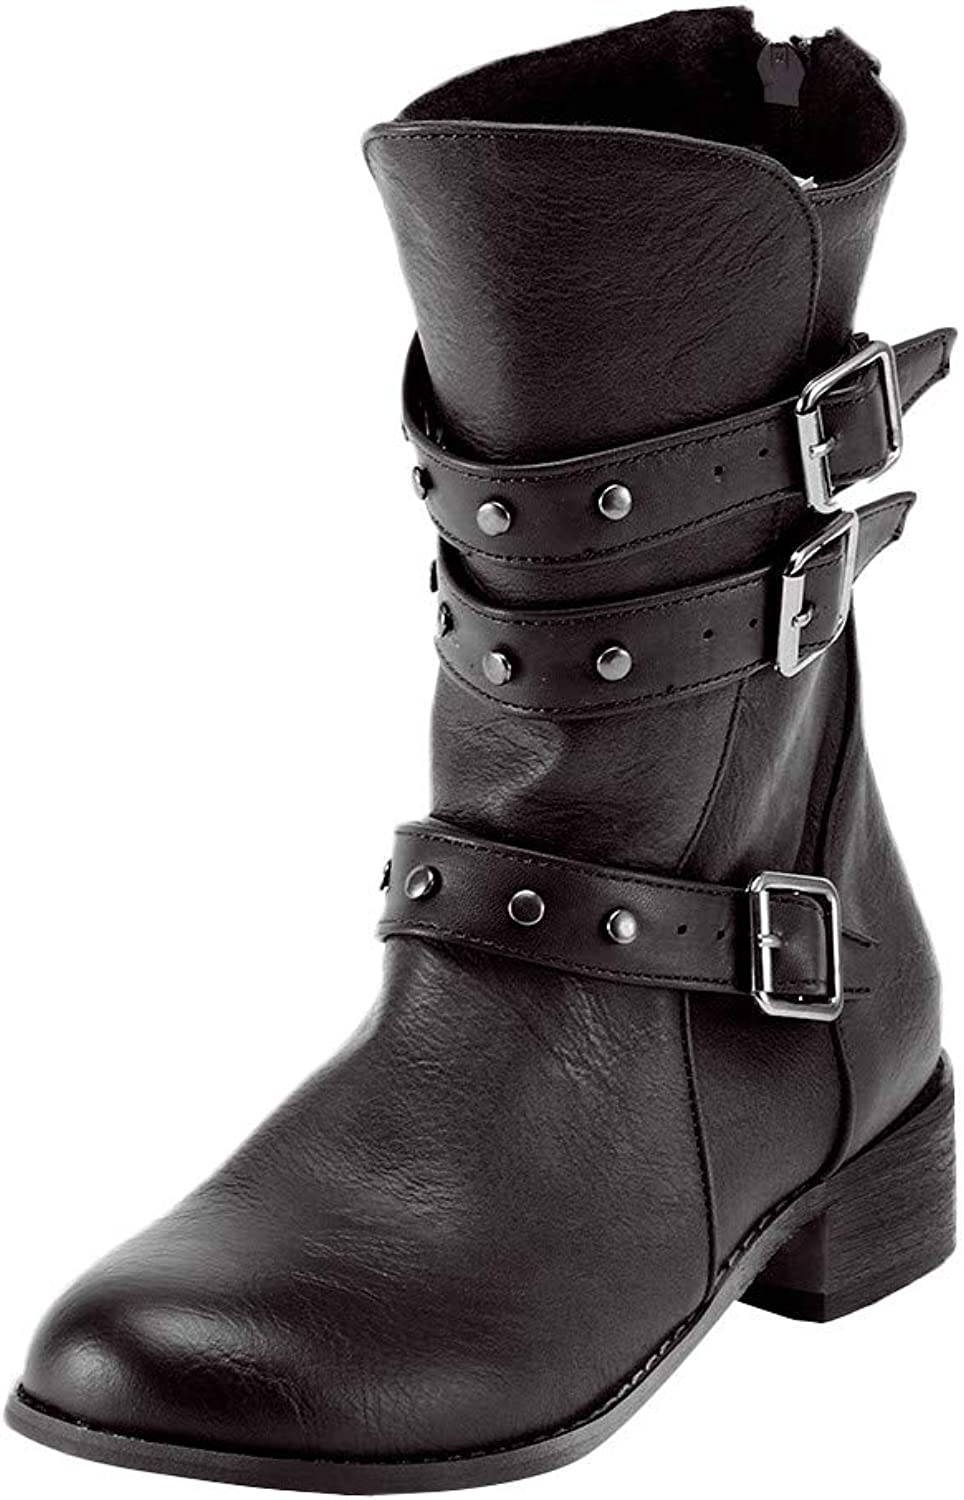 Goodtrade8 Clearance Knee High Boots for Women, Retro shoes Buckle Zip Non-Slip Round Toe Rivets Middle Tube Martin Boots